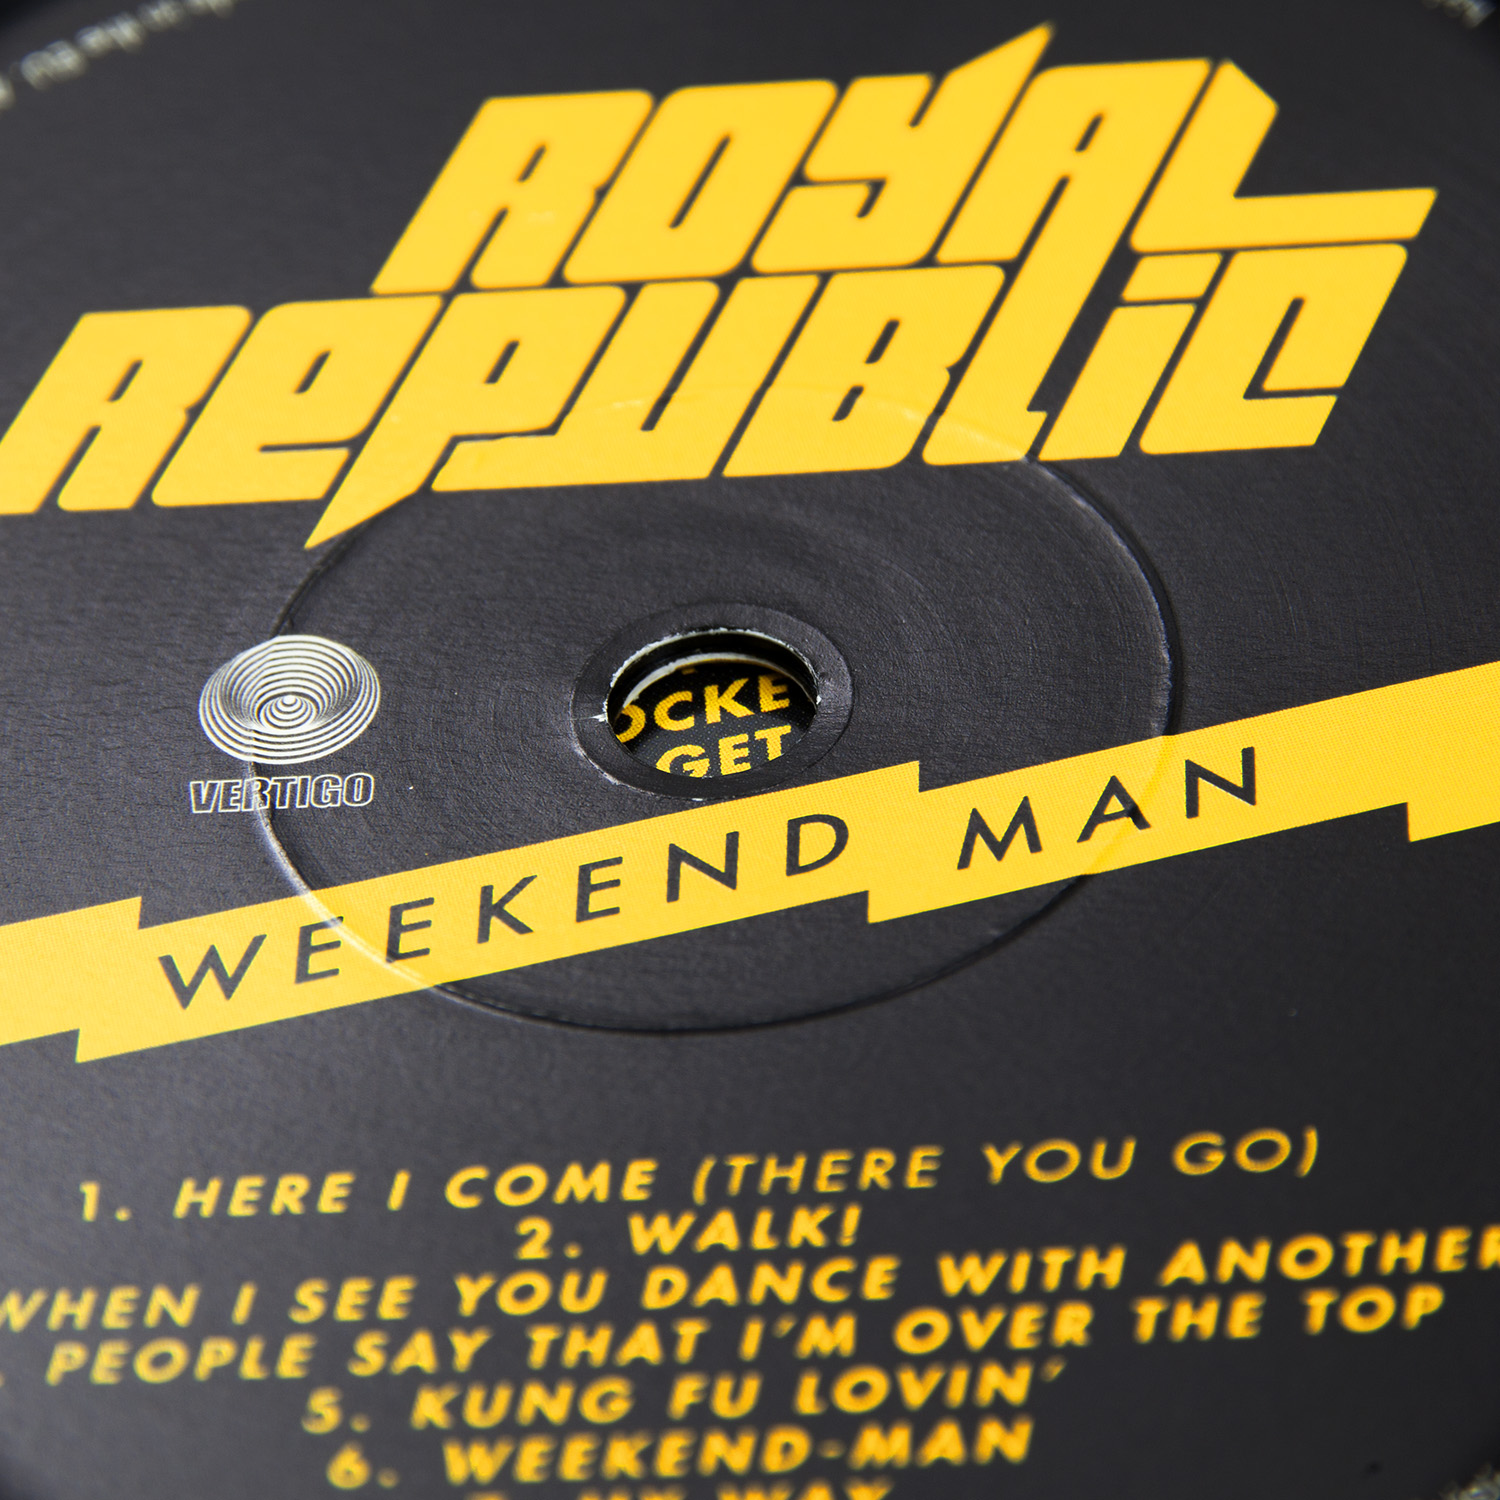 Royal Republic. Weekend Man. 7